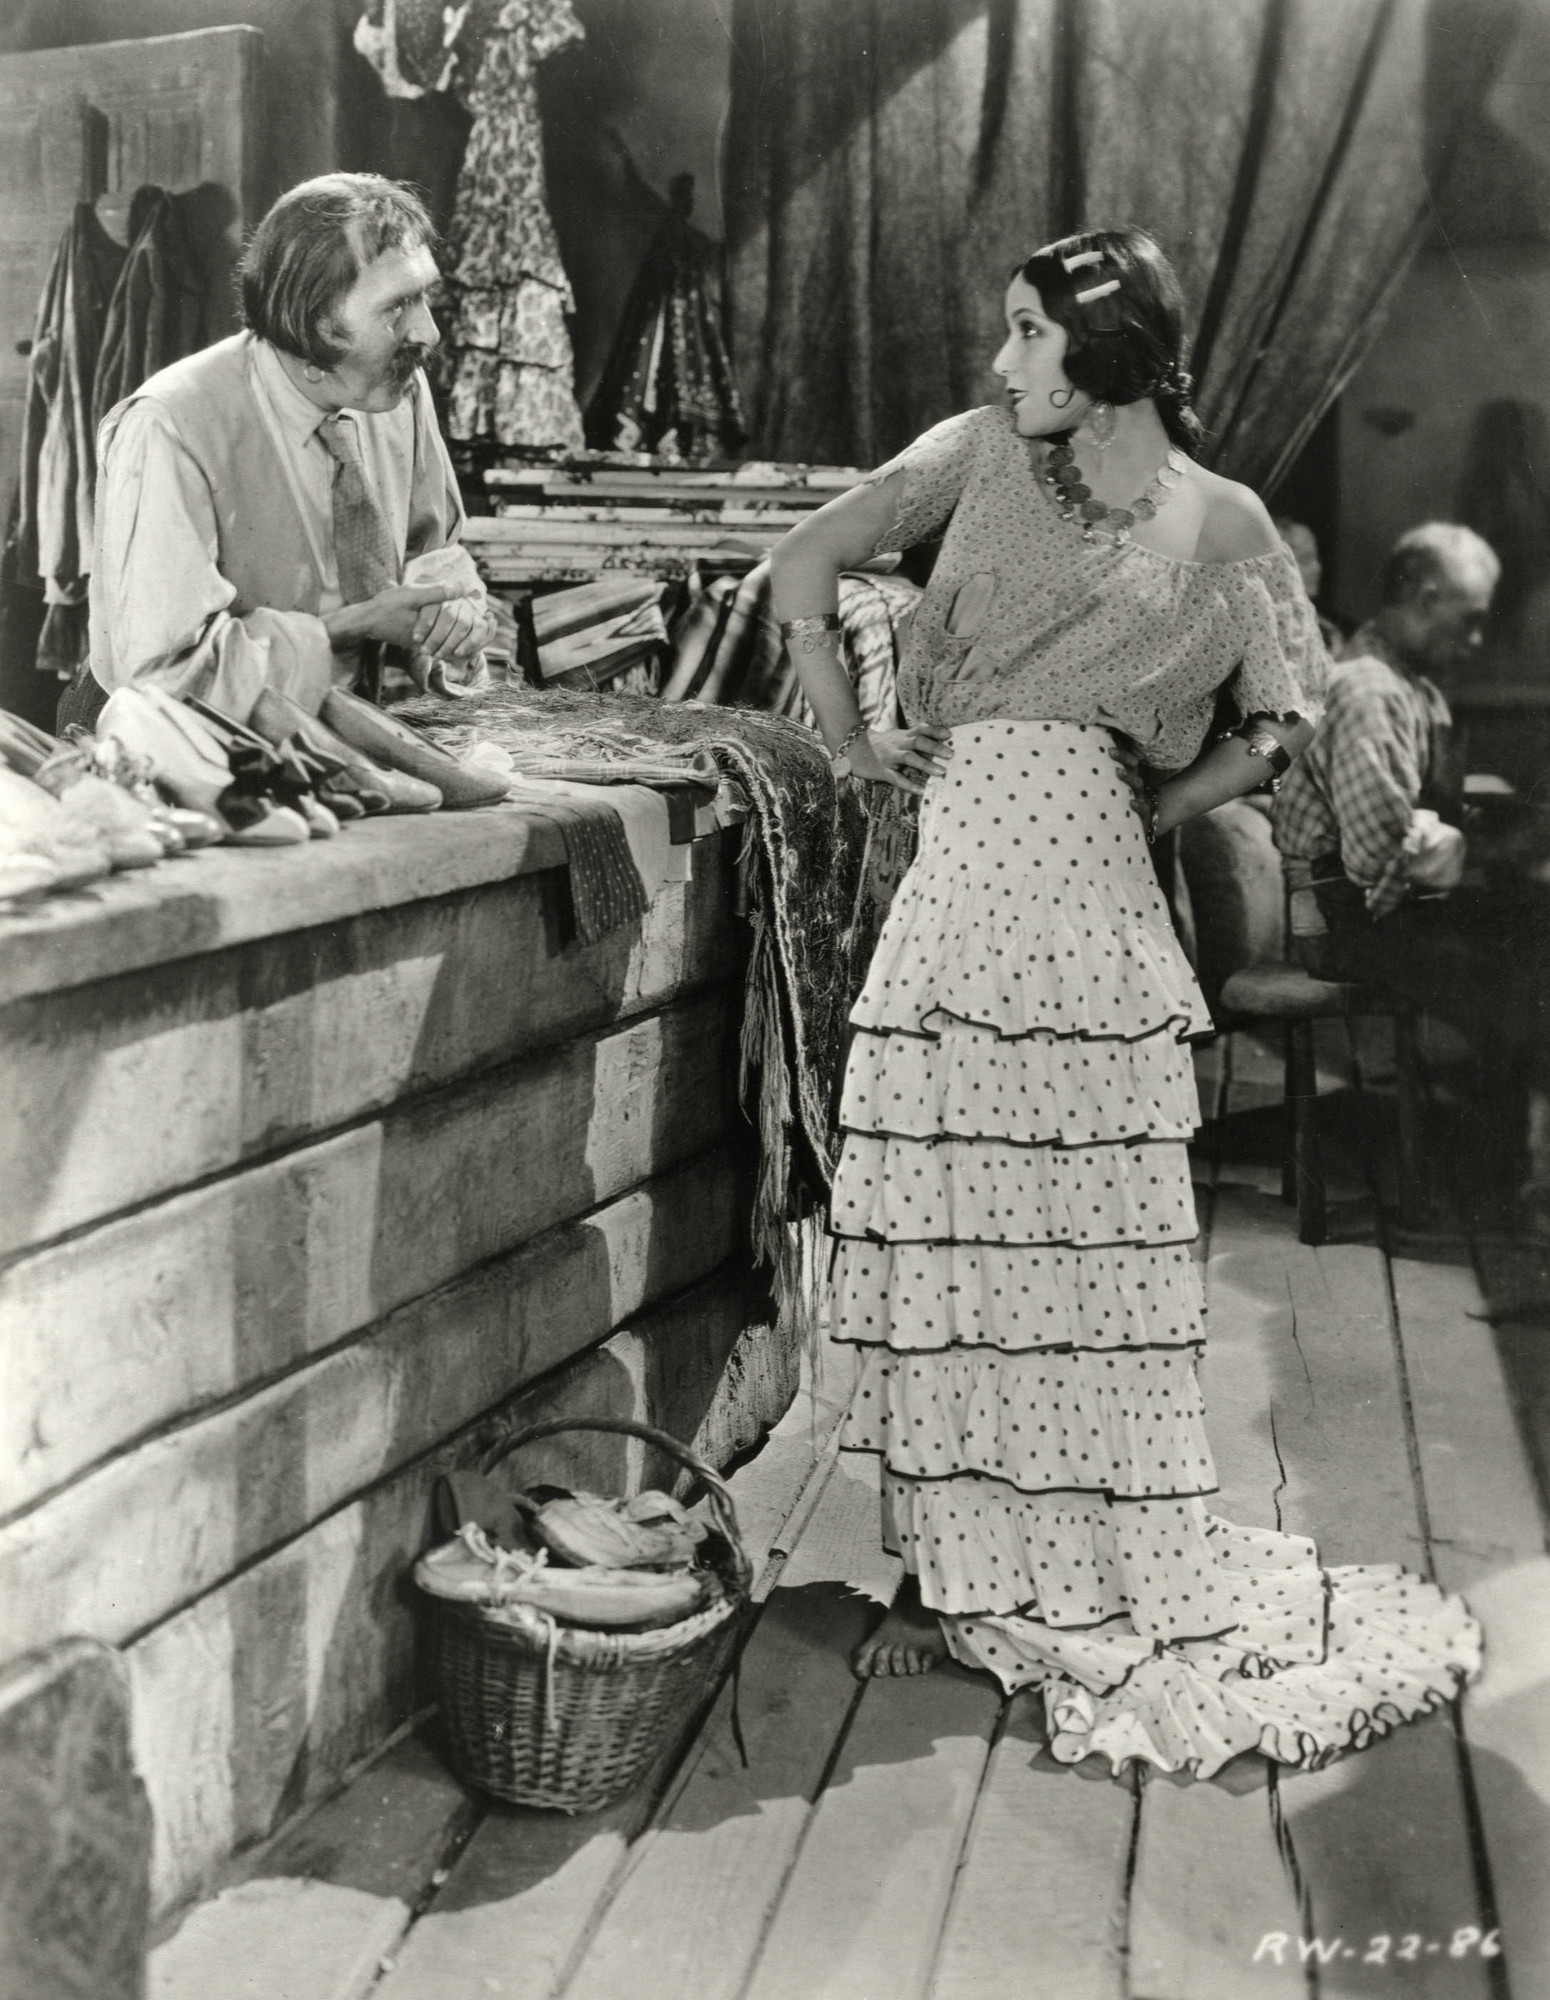 Loves of Carmen. 1927. USA. Directed by Raoul Walsh